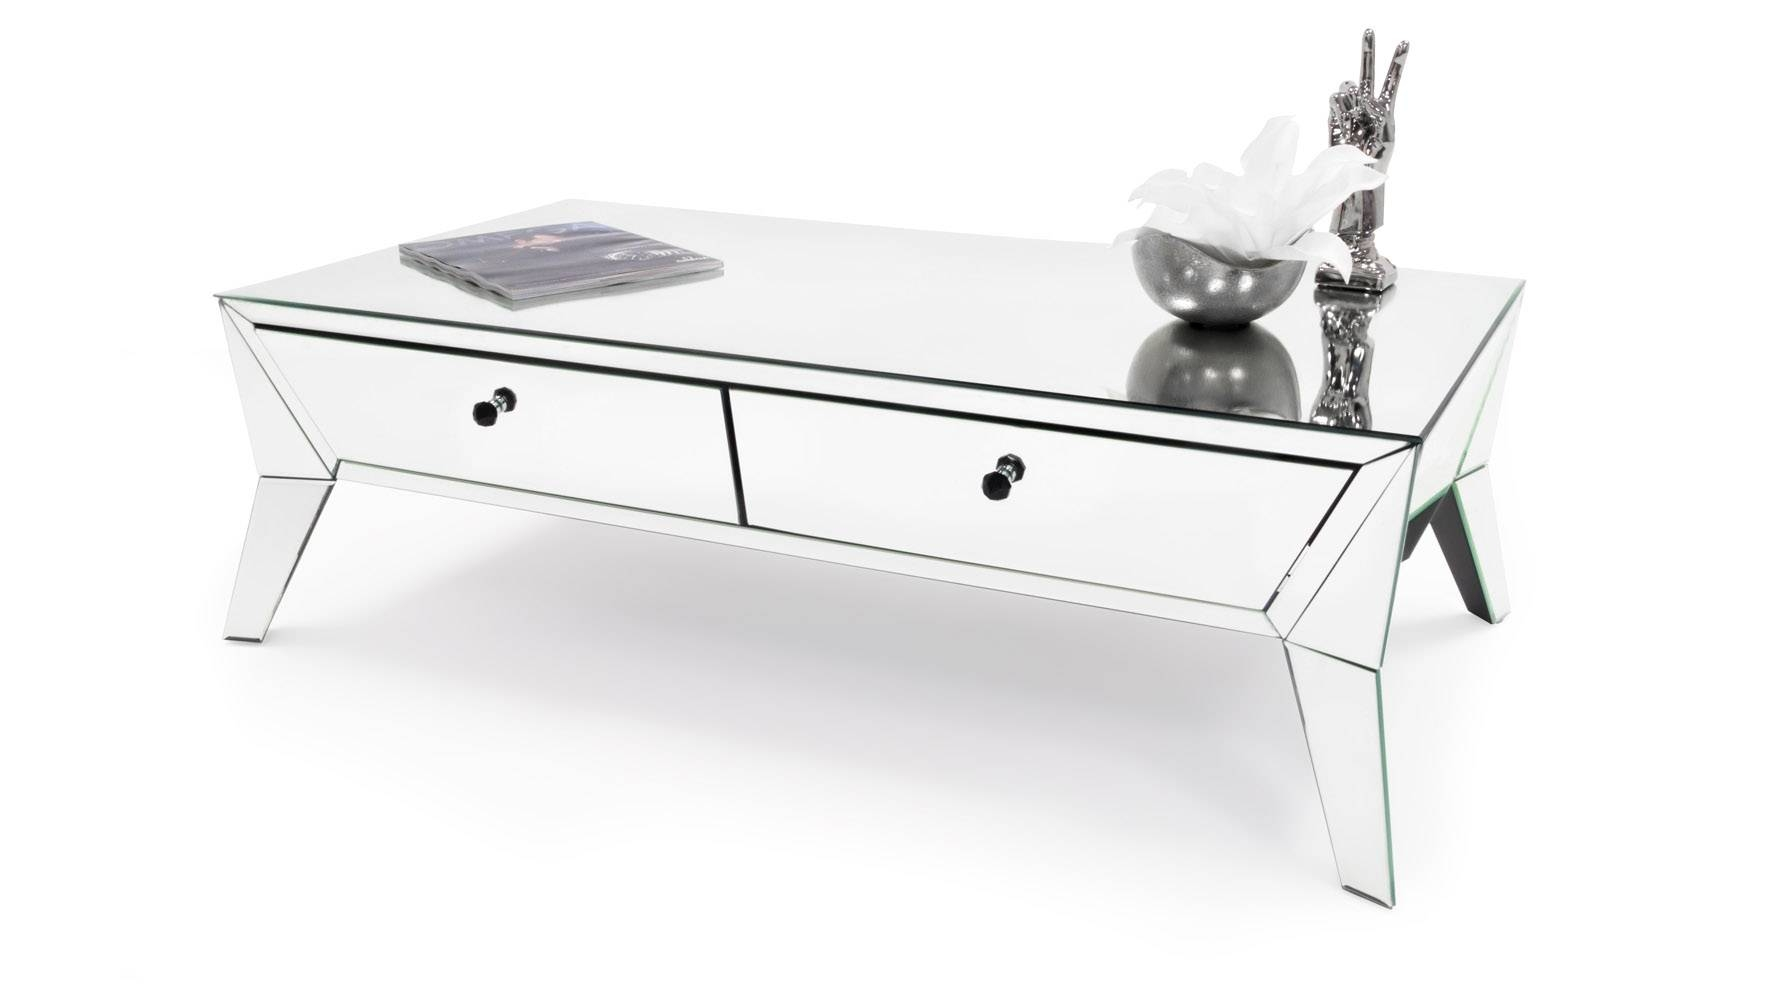 Lave Mirrored Glass Coffee Table | Zuri Furniture in Mirrored Coffee Tables (Image 14 of 30)